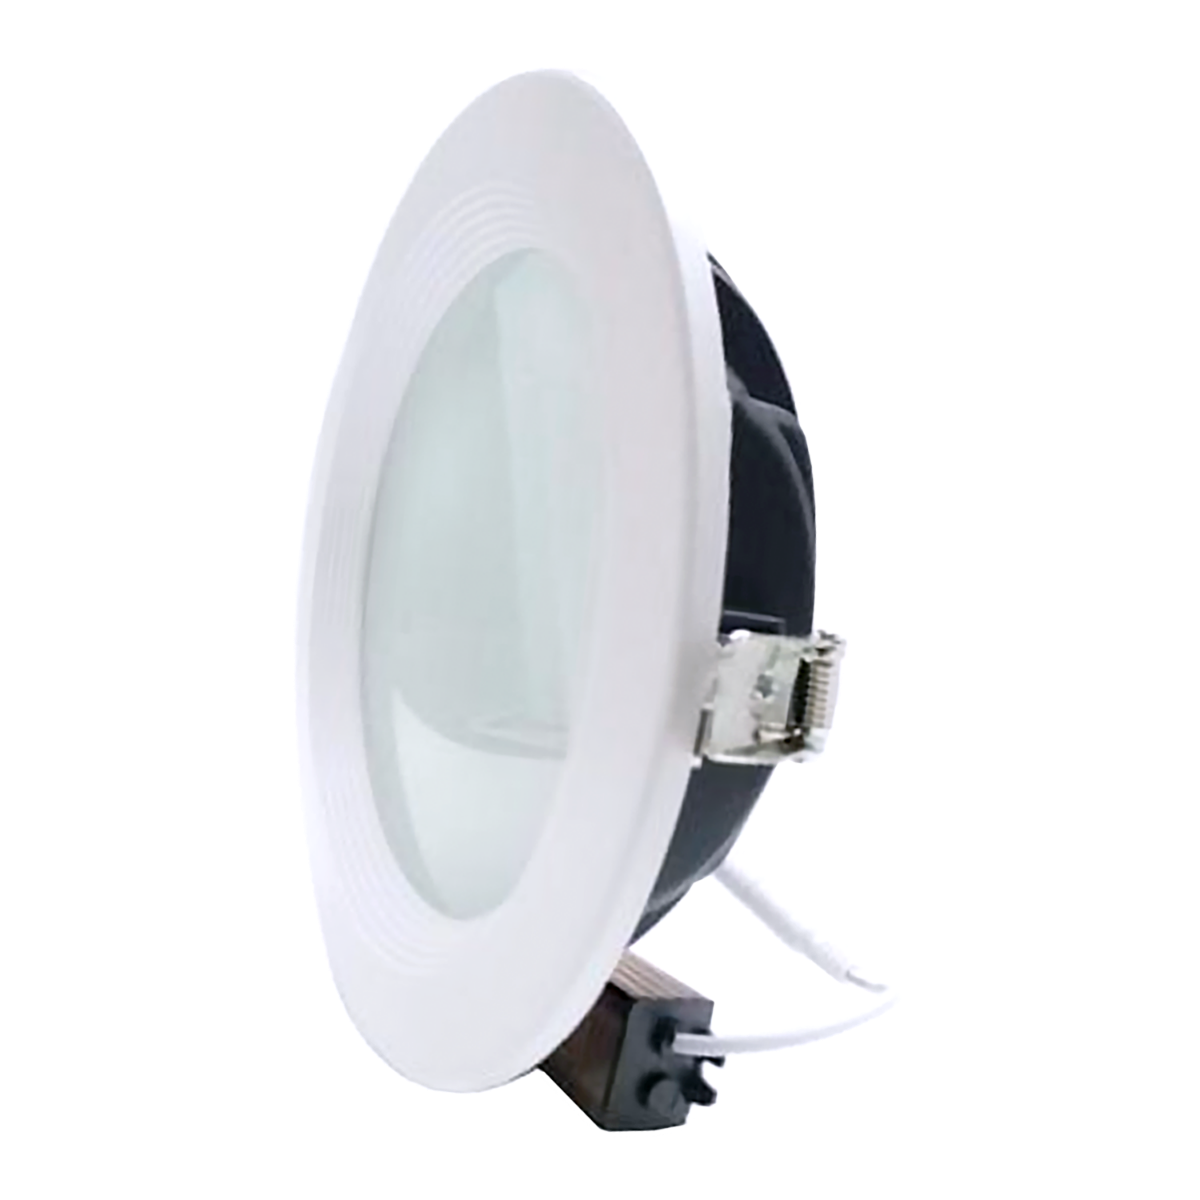 Downlight LED Silamp rond